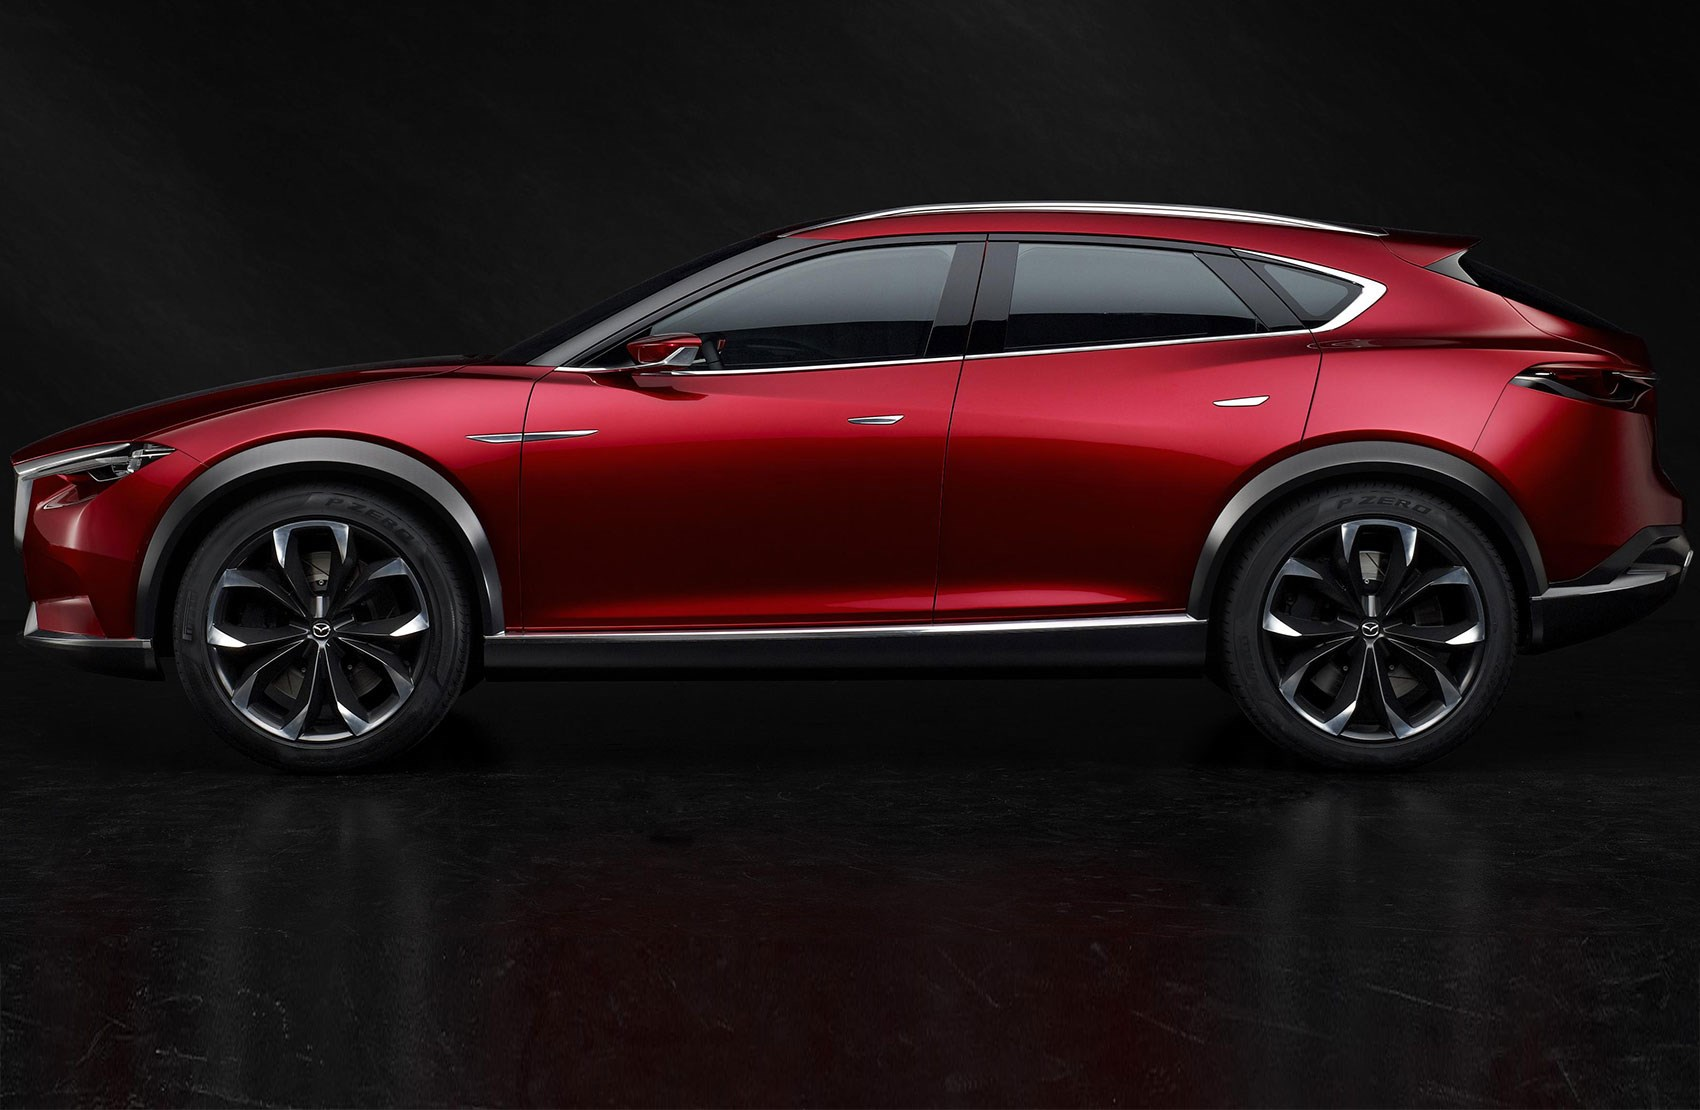 Mazda Koeru Crossover At Frankfurt 2015 Just A Concept Car Magazine Engine Diagram 2016 Release Date Its The New From